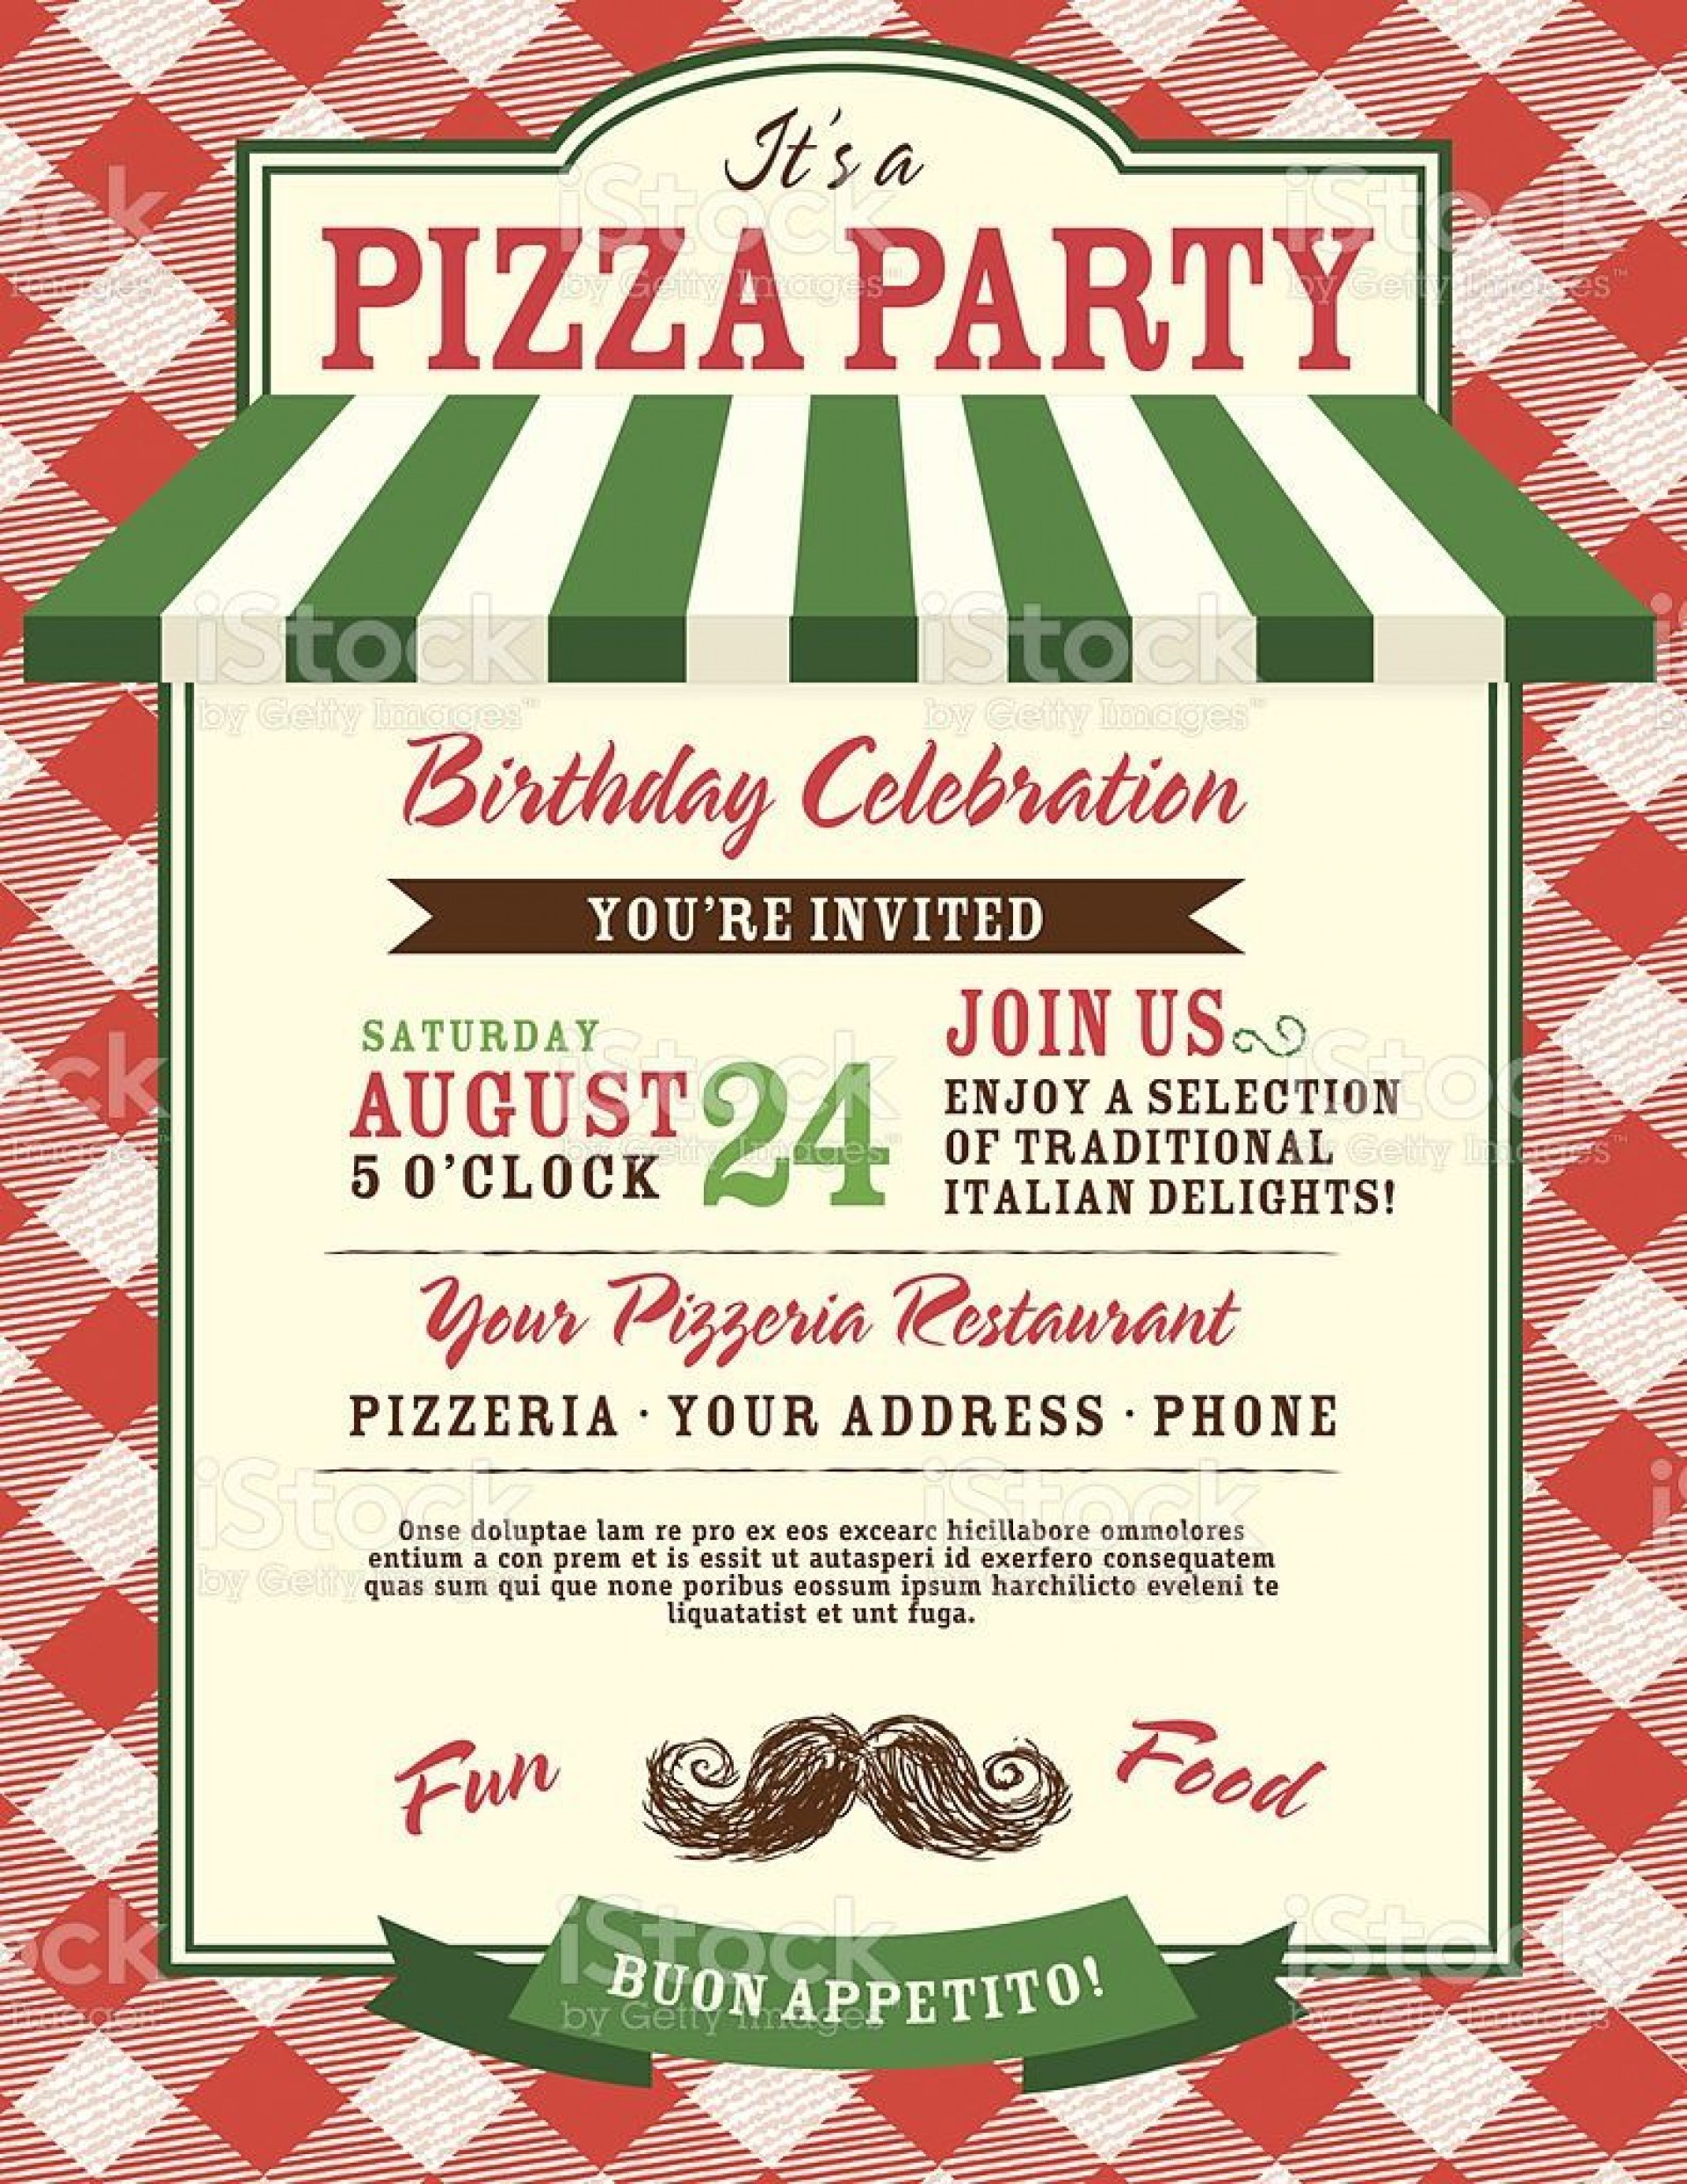 005 Astounding Pizza Party Invitation Template Free High Definition  Printable1920